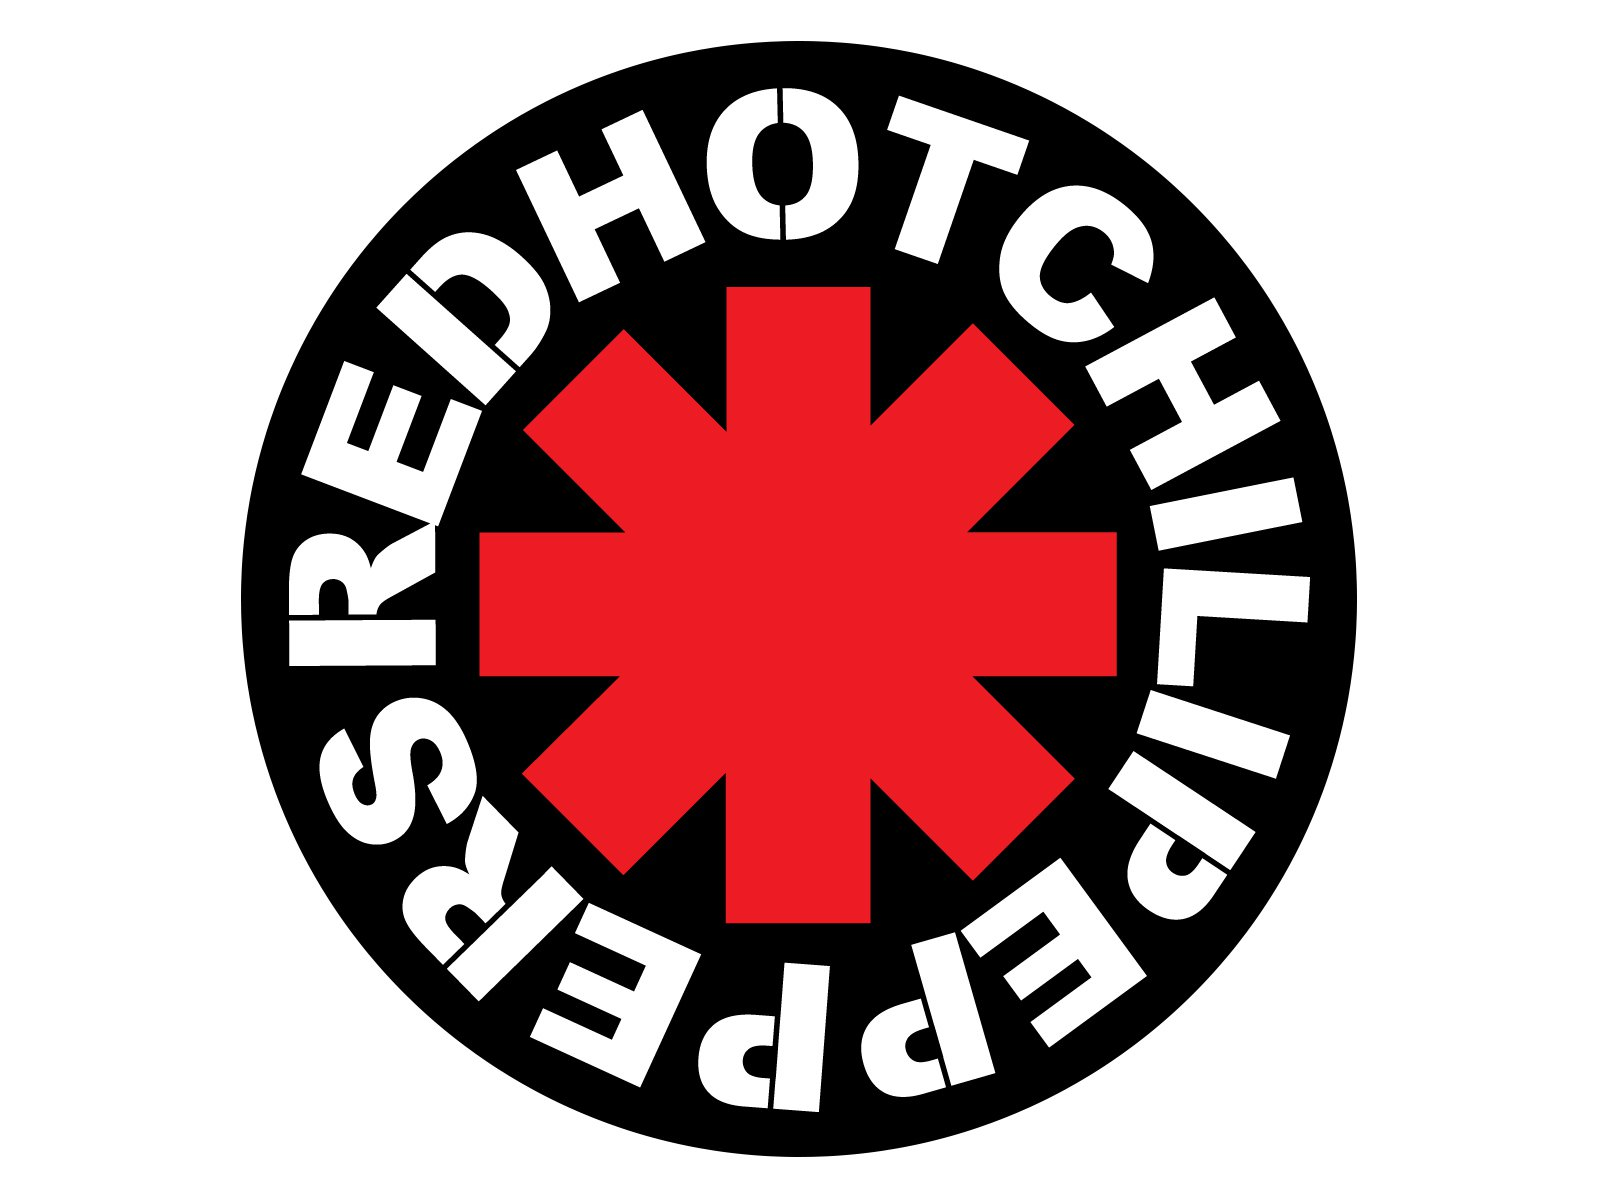 Red Hot Chili Peppers Logo, Red Hot Chili Peppers Symbol ...